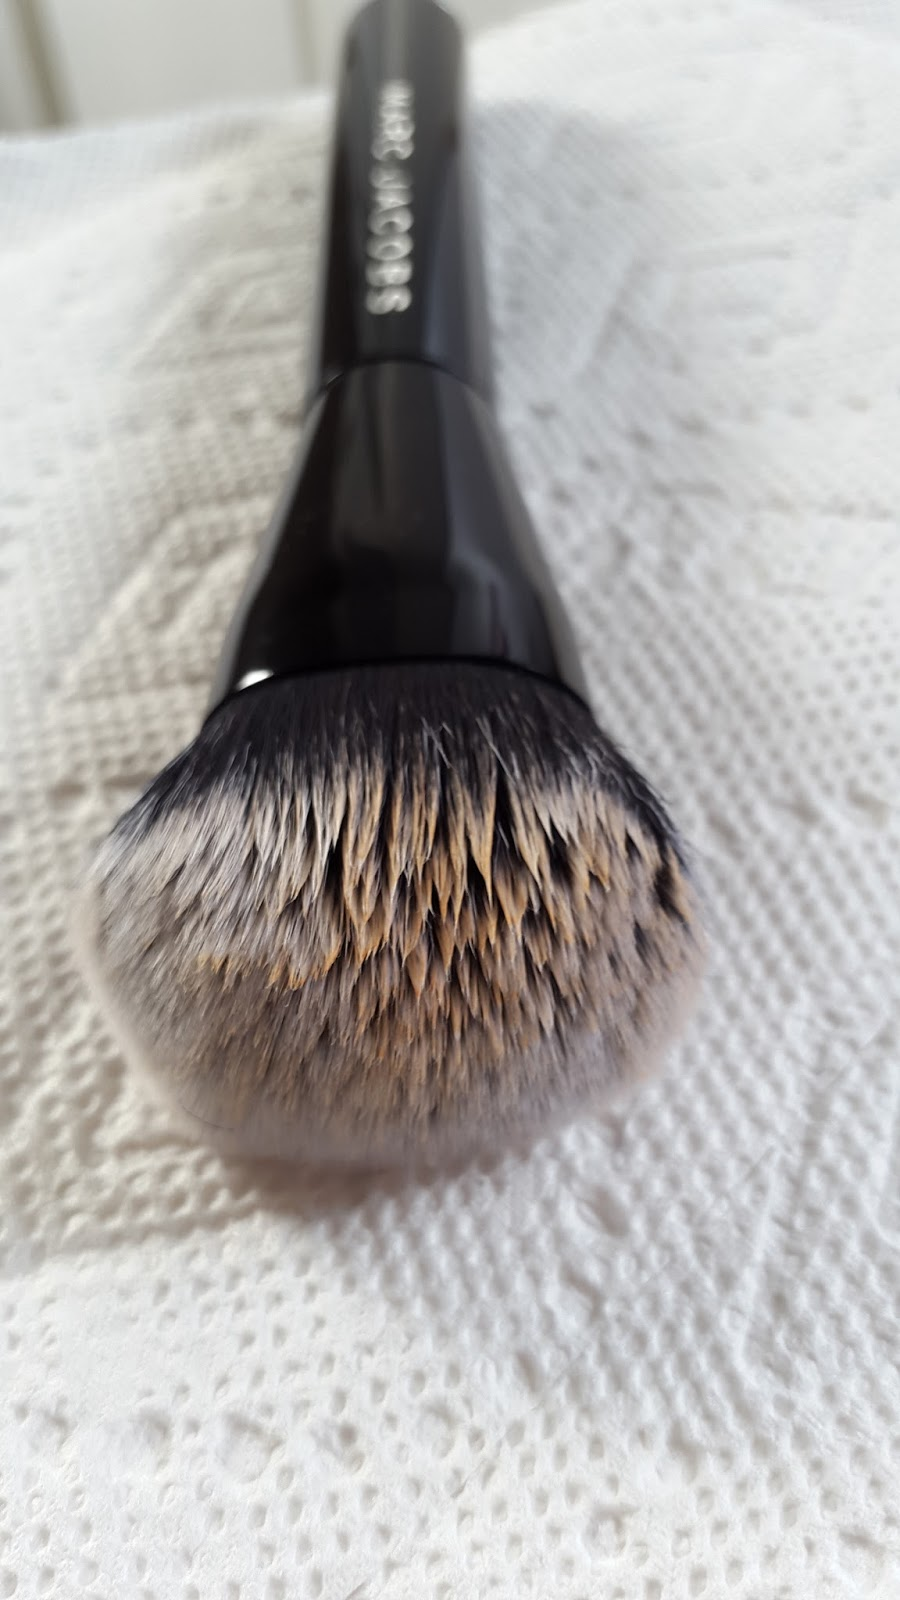 Real Techniques Brush Cleaning Palette Vs Sigma Spa Brush